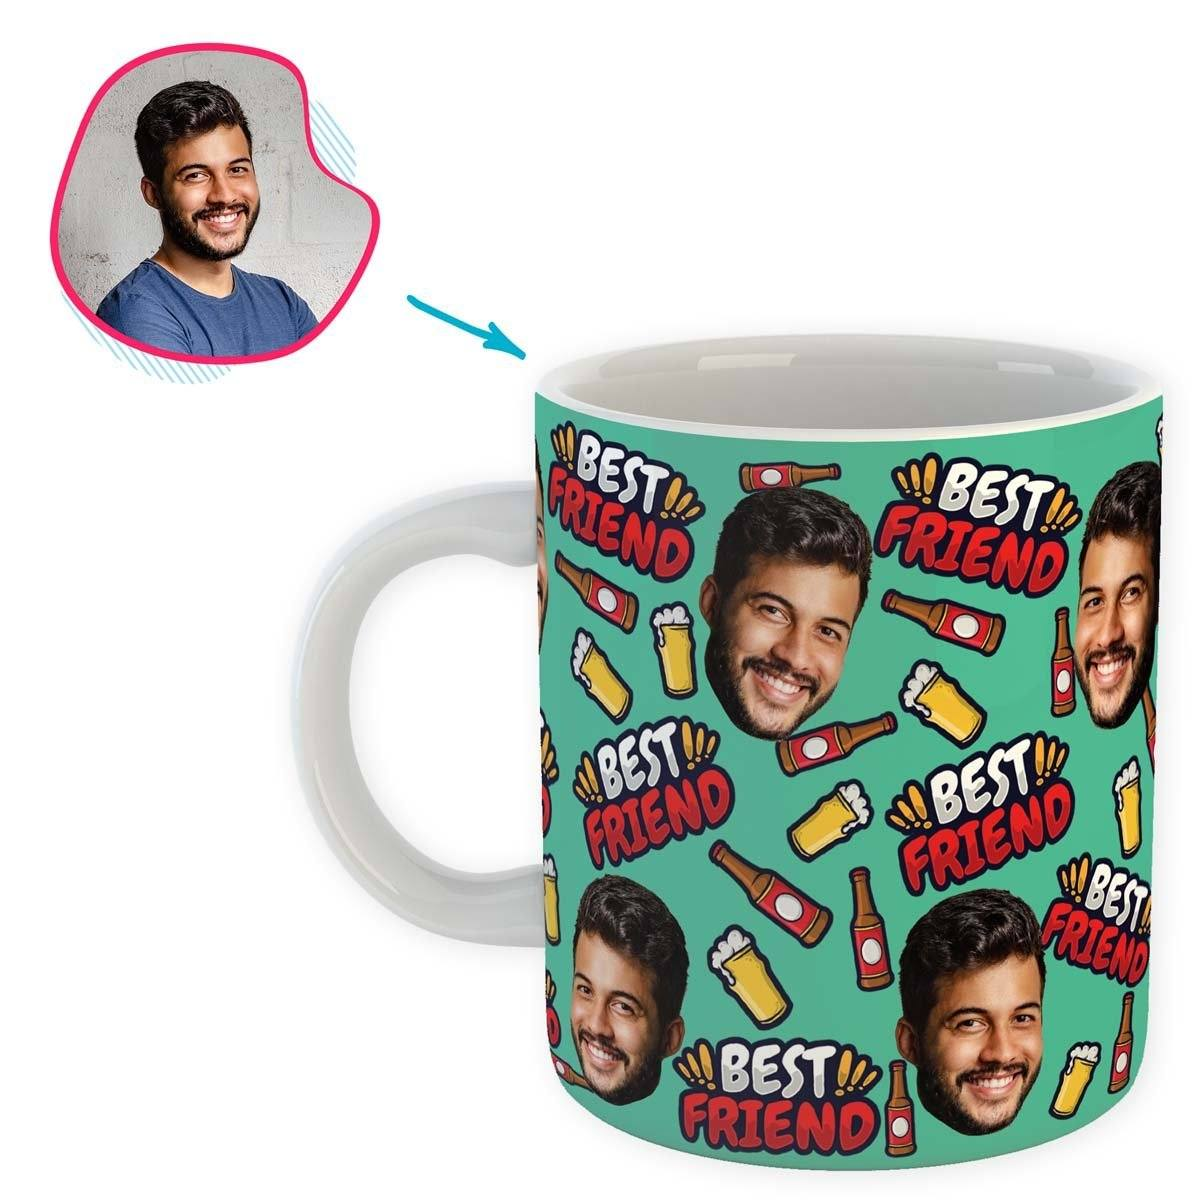 mint BFF for Him mug personalized with photo of face printed on it